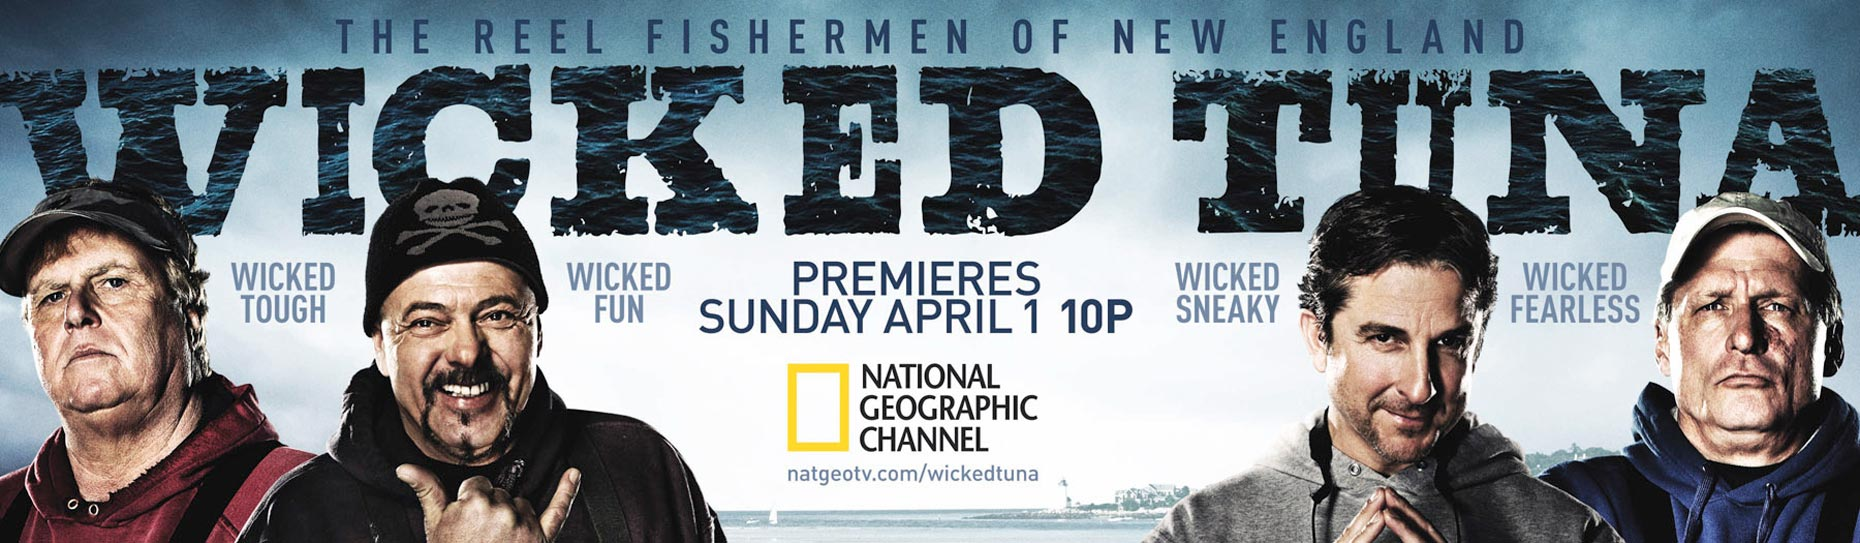 Wicked Tuna poster Nat Geo channel photo by Monte Isom